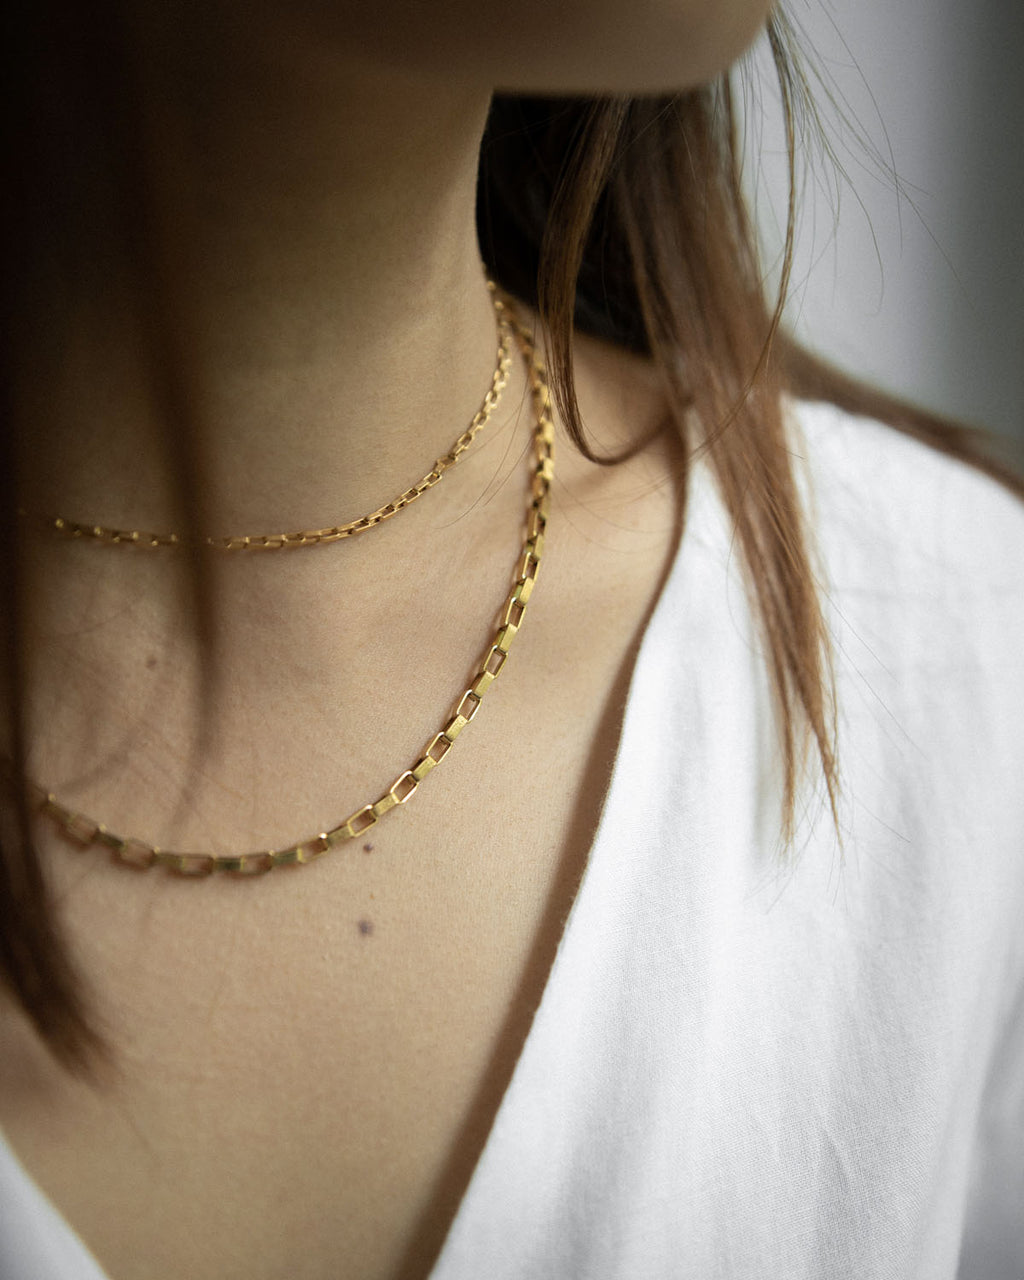 Versatile gold chains featuring interlocking rectangular links with a vintage gold finish - The Hexad Jewelry